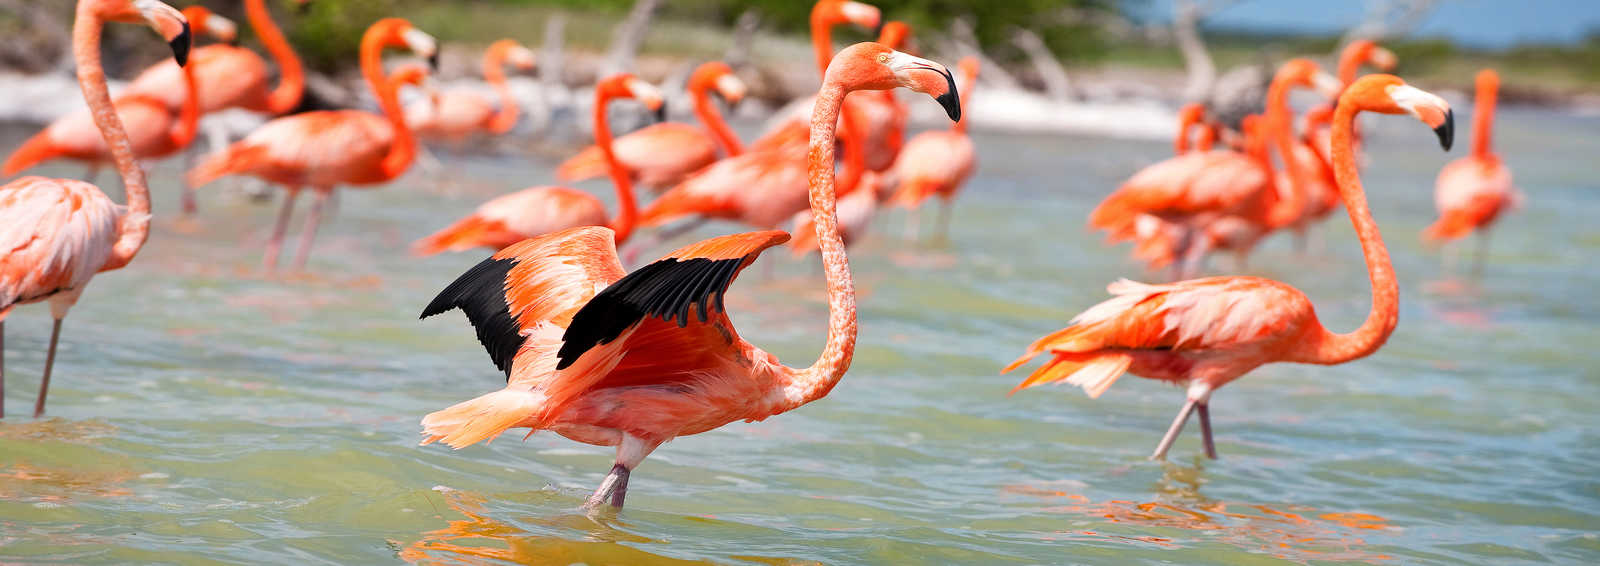 Celestun Flamingoes, Yucatan, Mexico